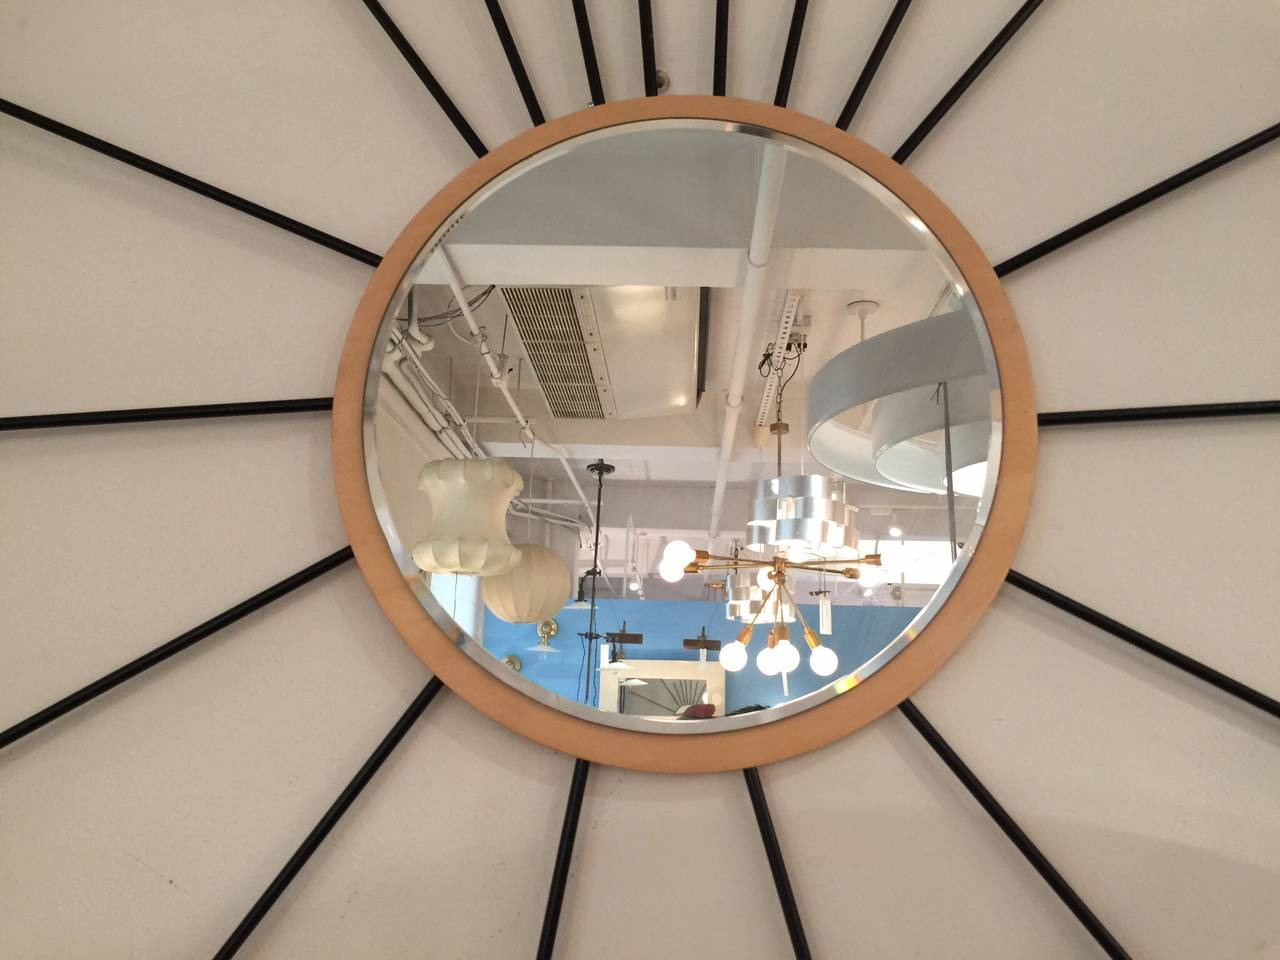 Whimsical starburst mirror.  USA, 1980s.  Blond wood frame accentuated by black dowel rays.